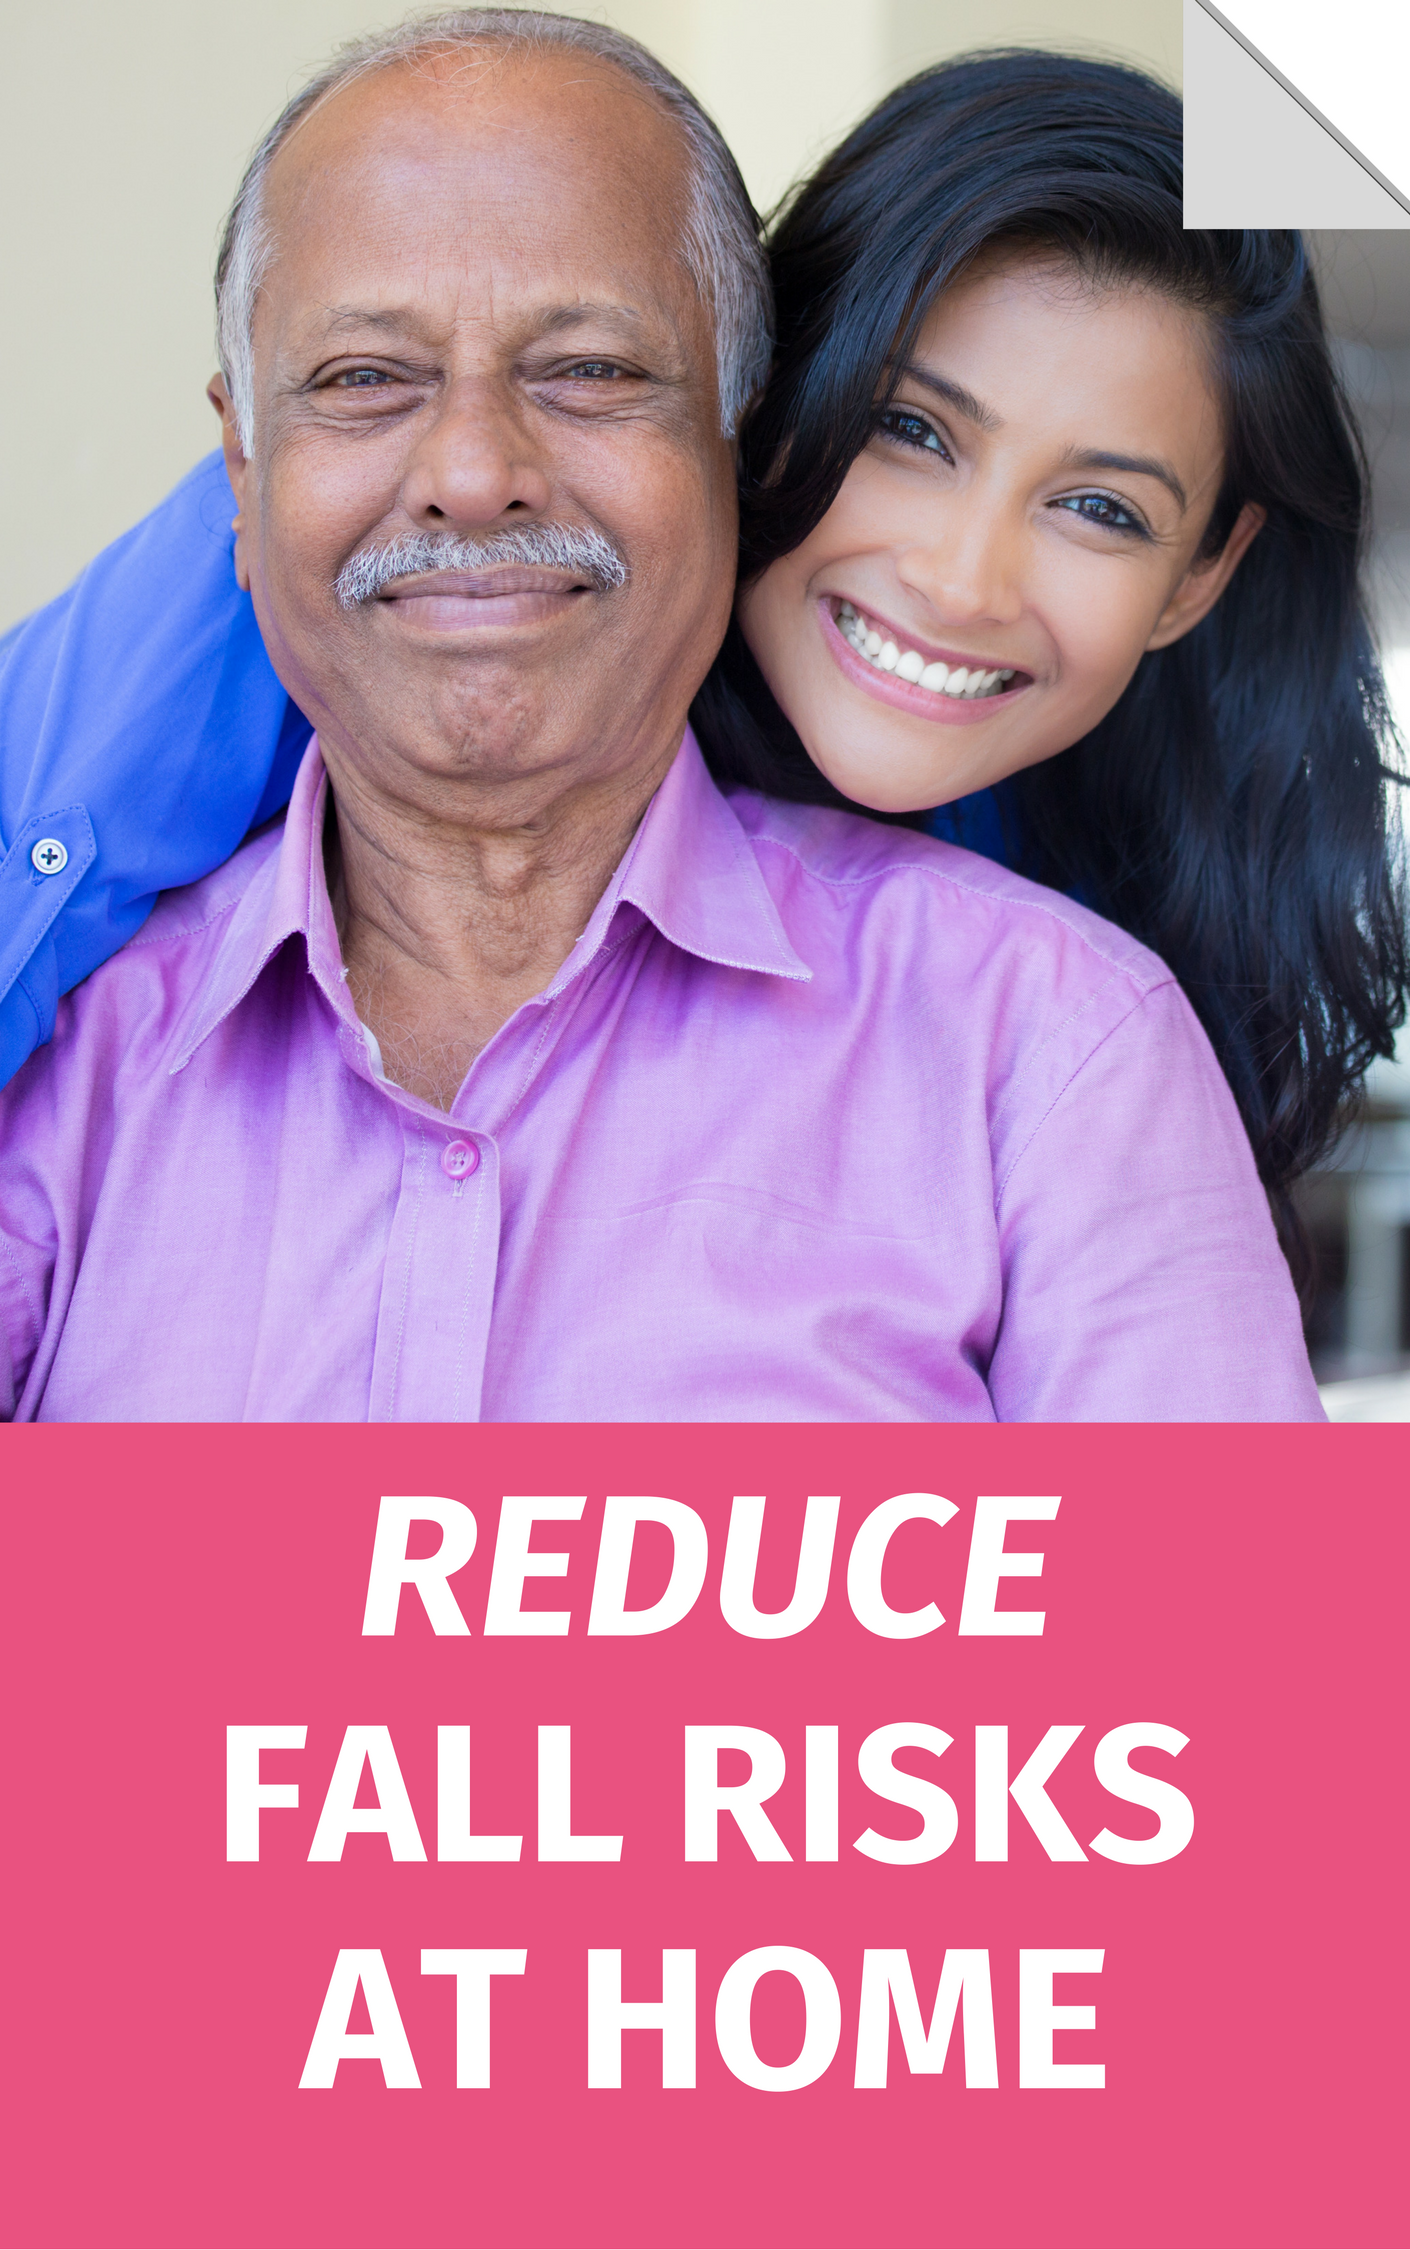 Reduce Fall Risks at Home